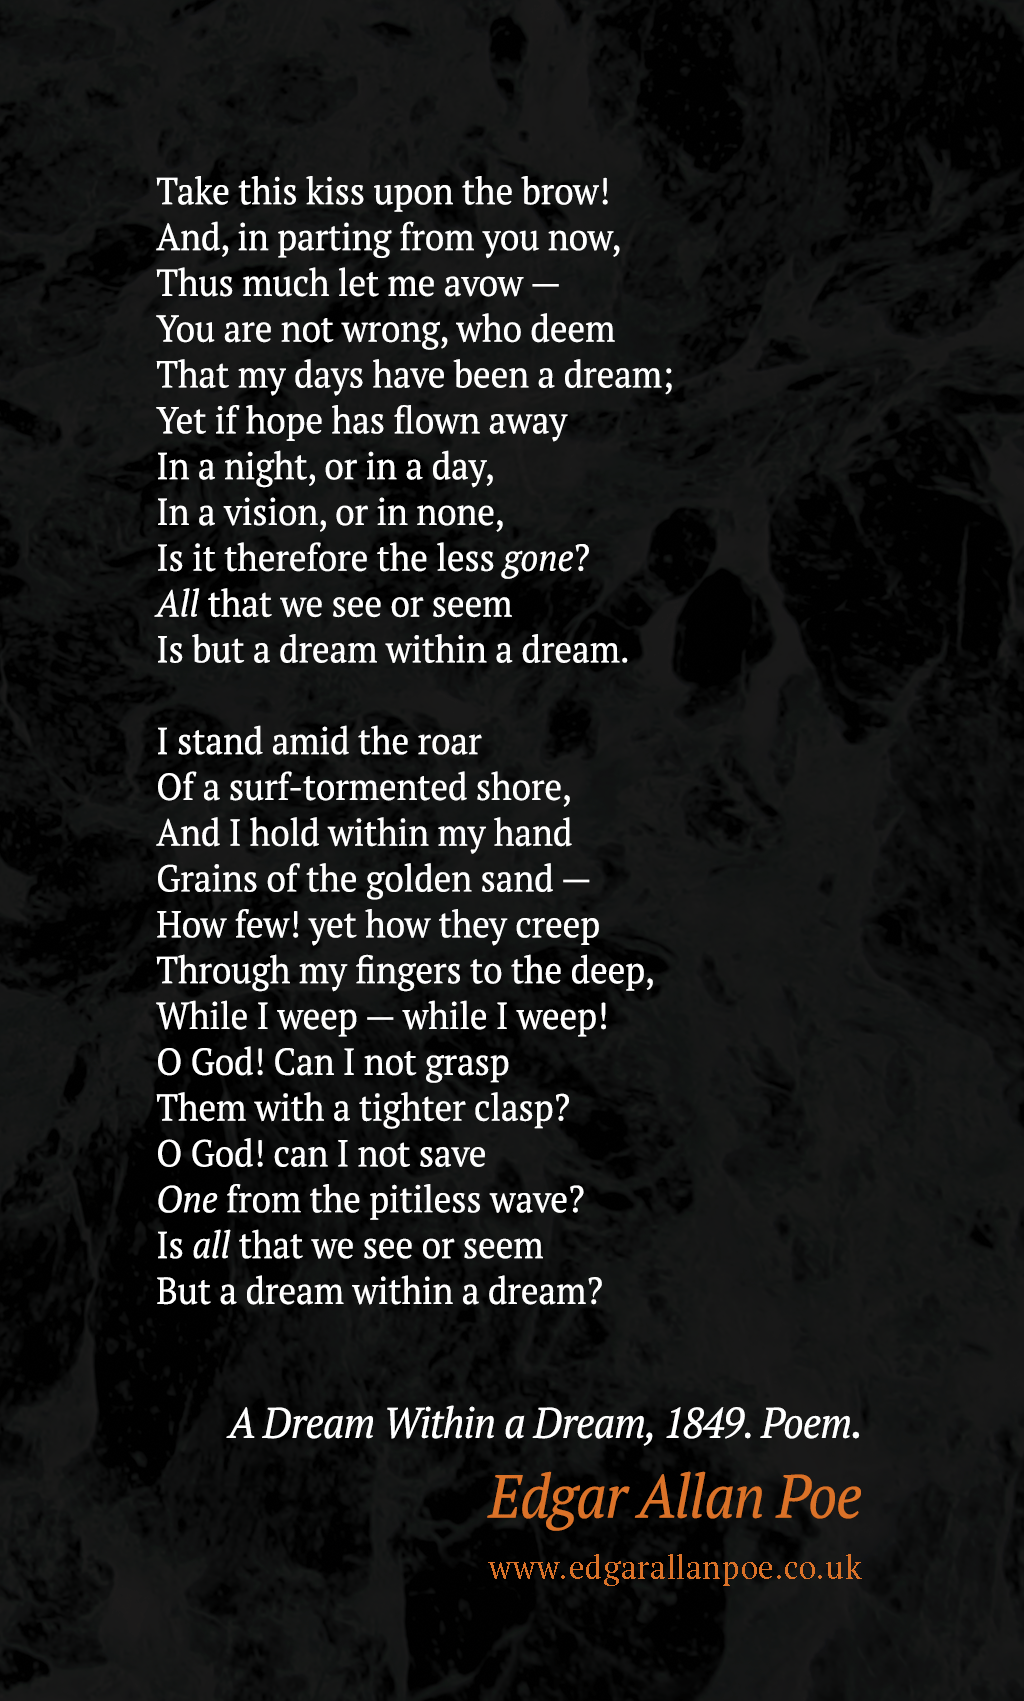 Full Poem Adream Within A Dream Edgar Allan Poe Quote